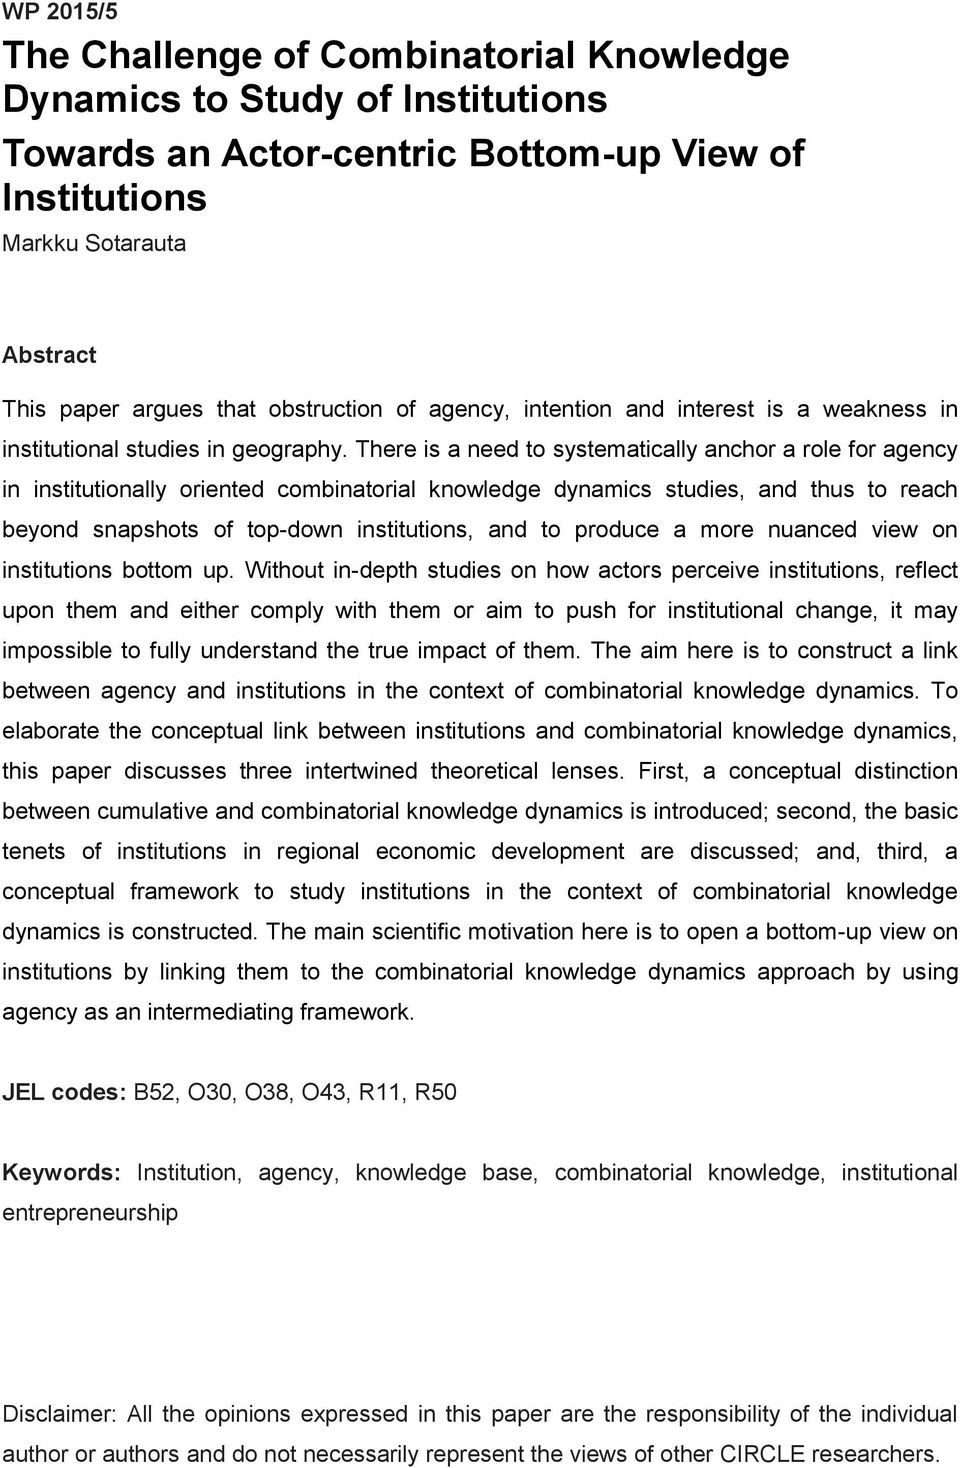 There is a need to systematically anchor a role for agency in institutionally oriented combinatorial knowledge dynamics studies, and thus to reach beyond snapshots of top-down institutions, and to